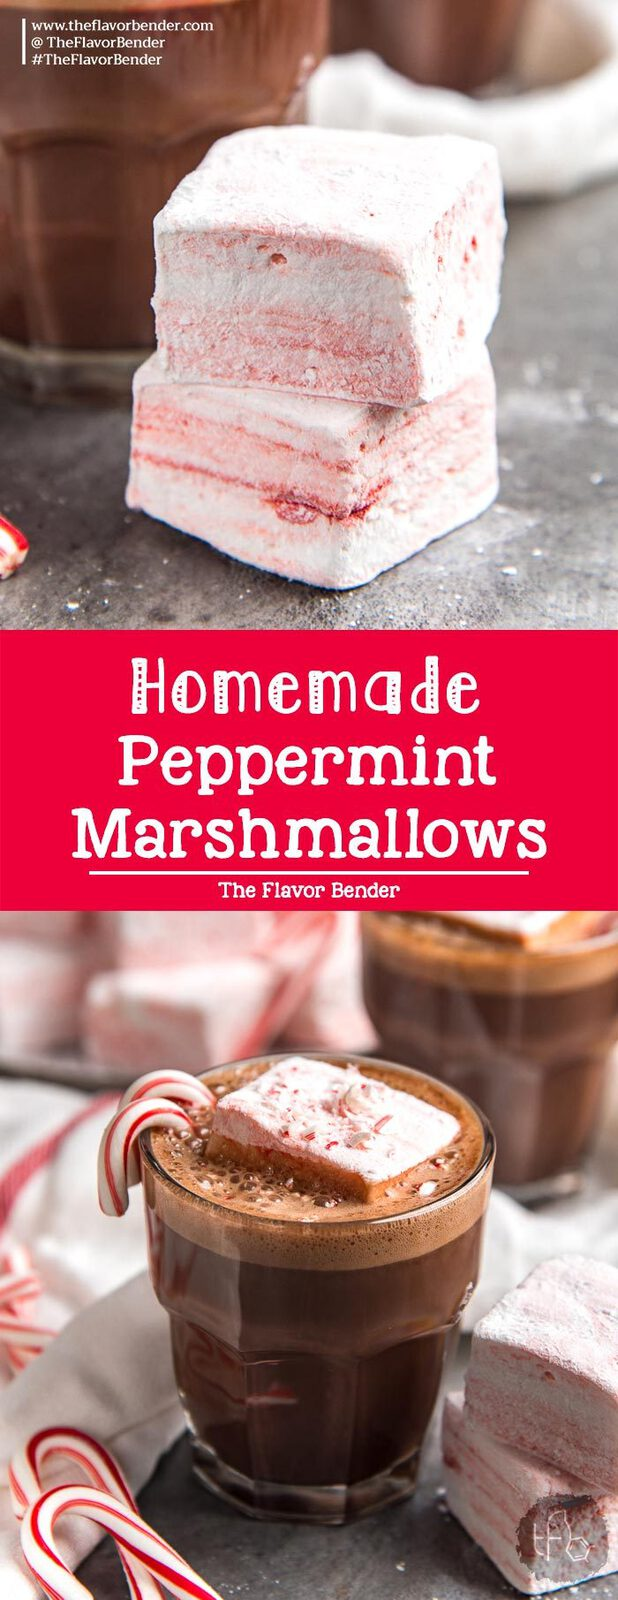 Homemade Peppermint Marshmallows - Soft, springy, fluffy peppermint marshmallows that are addictively delicious. Make them with or without corn syrup.  #PeppermintRecipes #PeppermintMarshmallows #EdibleGifts #HolidayRecipes #HomemadeMarshmallows